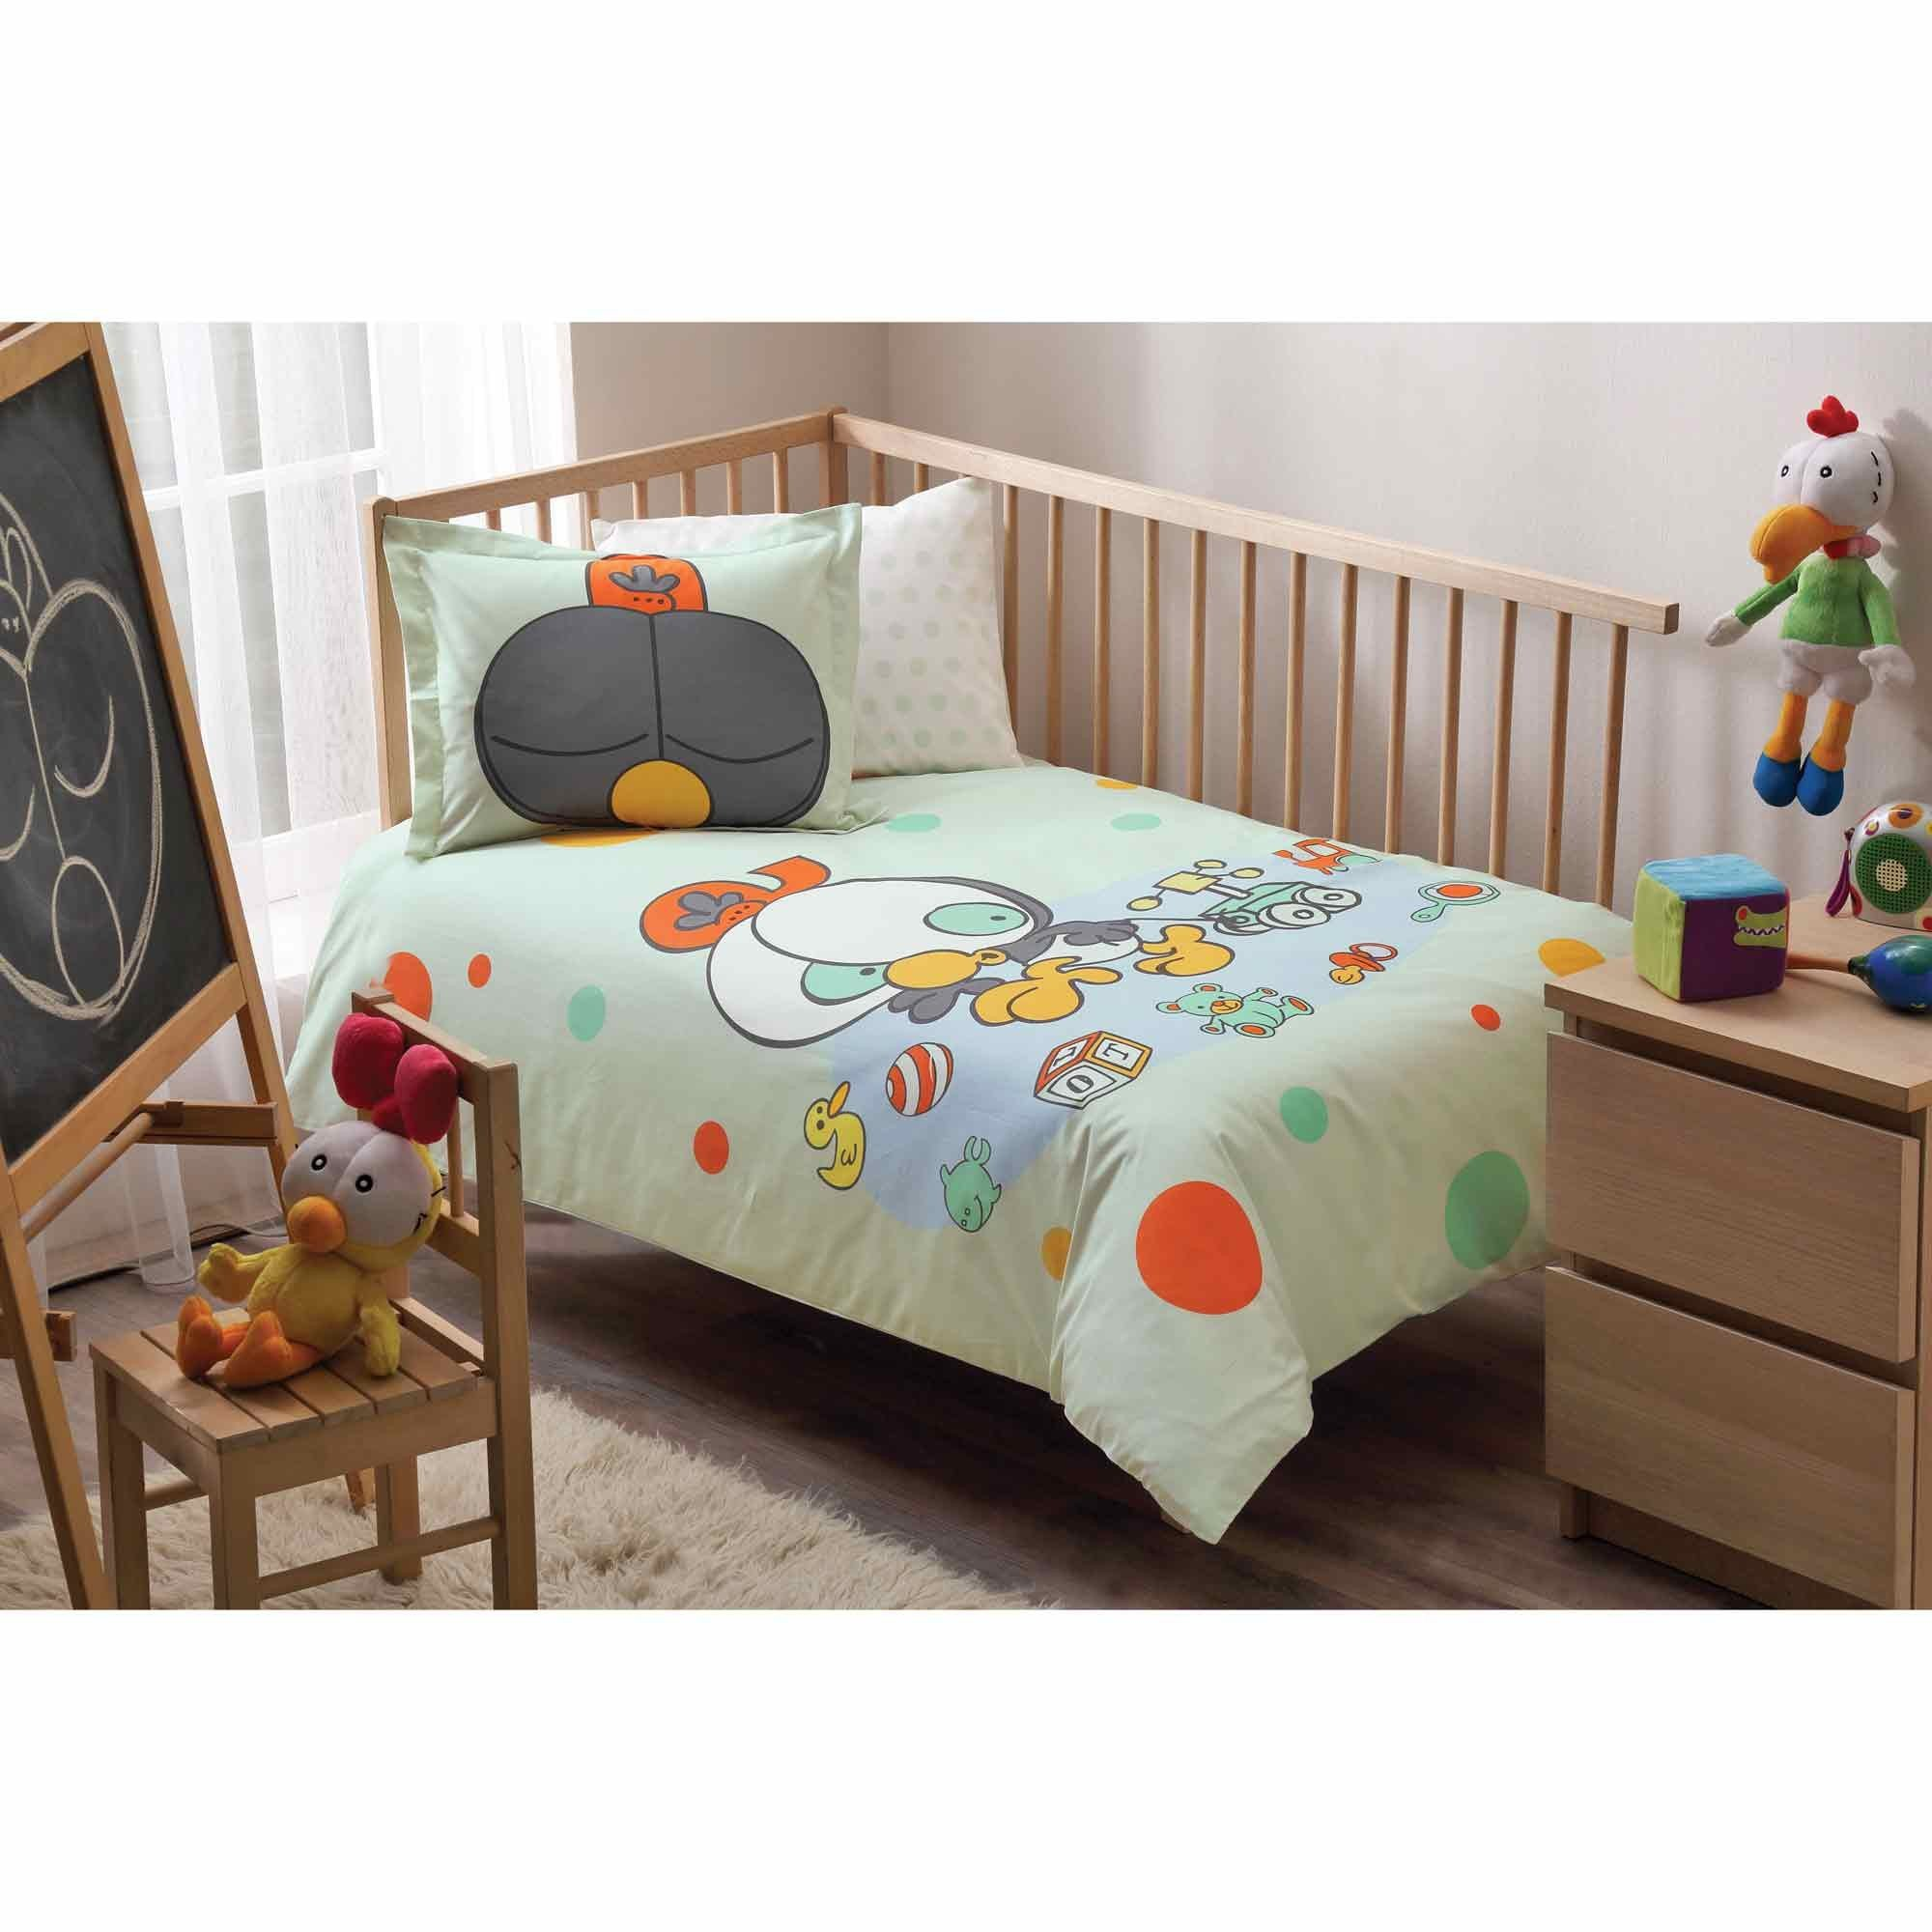 LaModaHome 4 Pcs Luxury Soft Colored Licensed Baby Quilt Cover Set 100% Cotton Green Orange Yellow Gray Bear Duck Kid Bird Toys Baby Bed with Flat Sheet